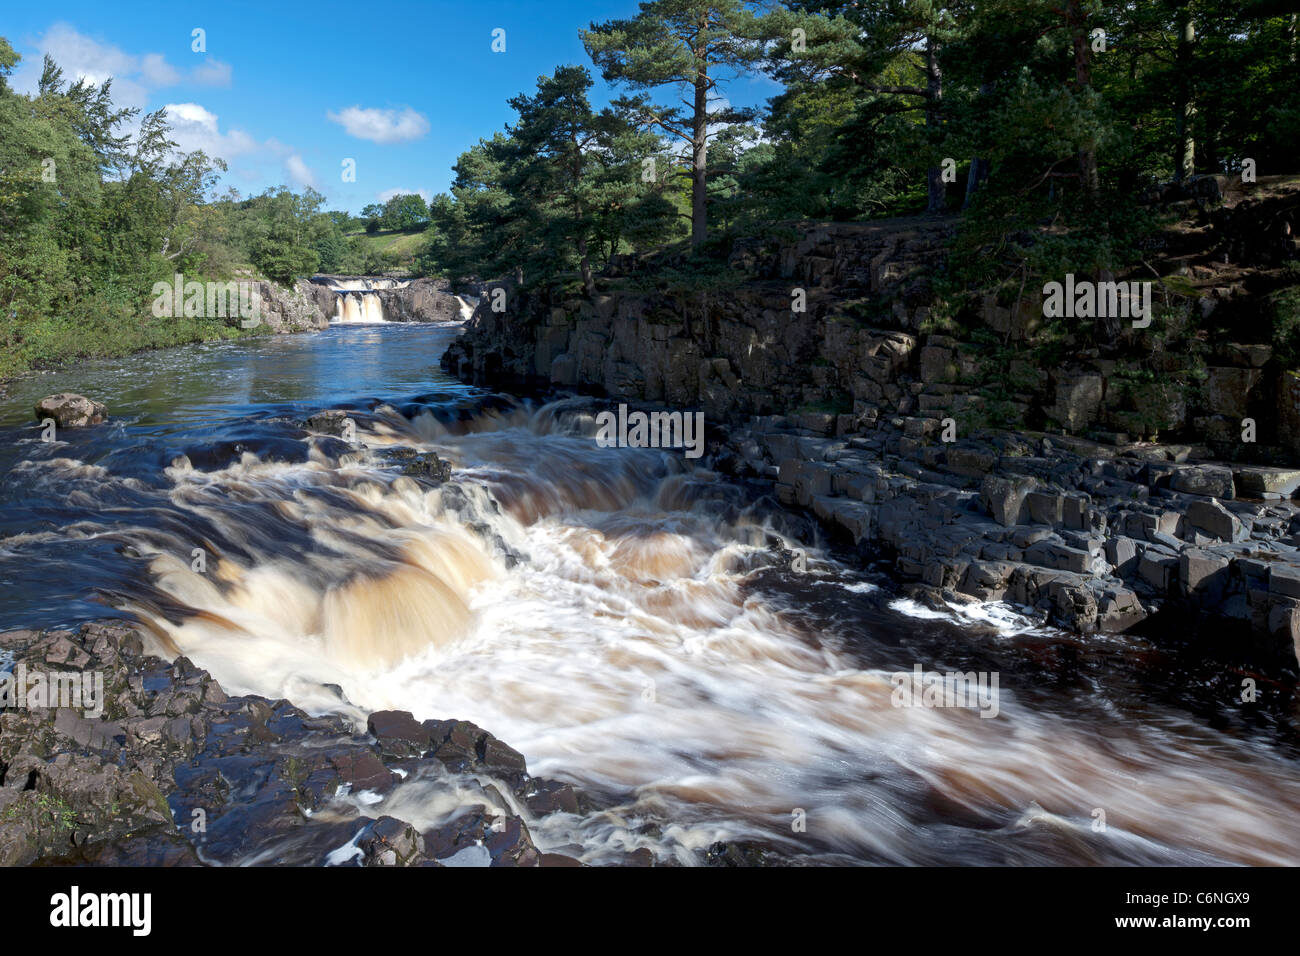 Gushing water over Low Force Waterfall, near Middleton in Teesdale, County Durham - Stock Image